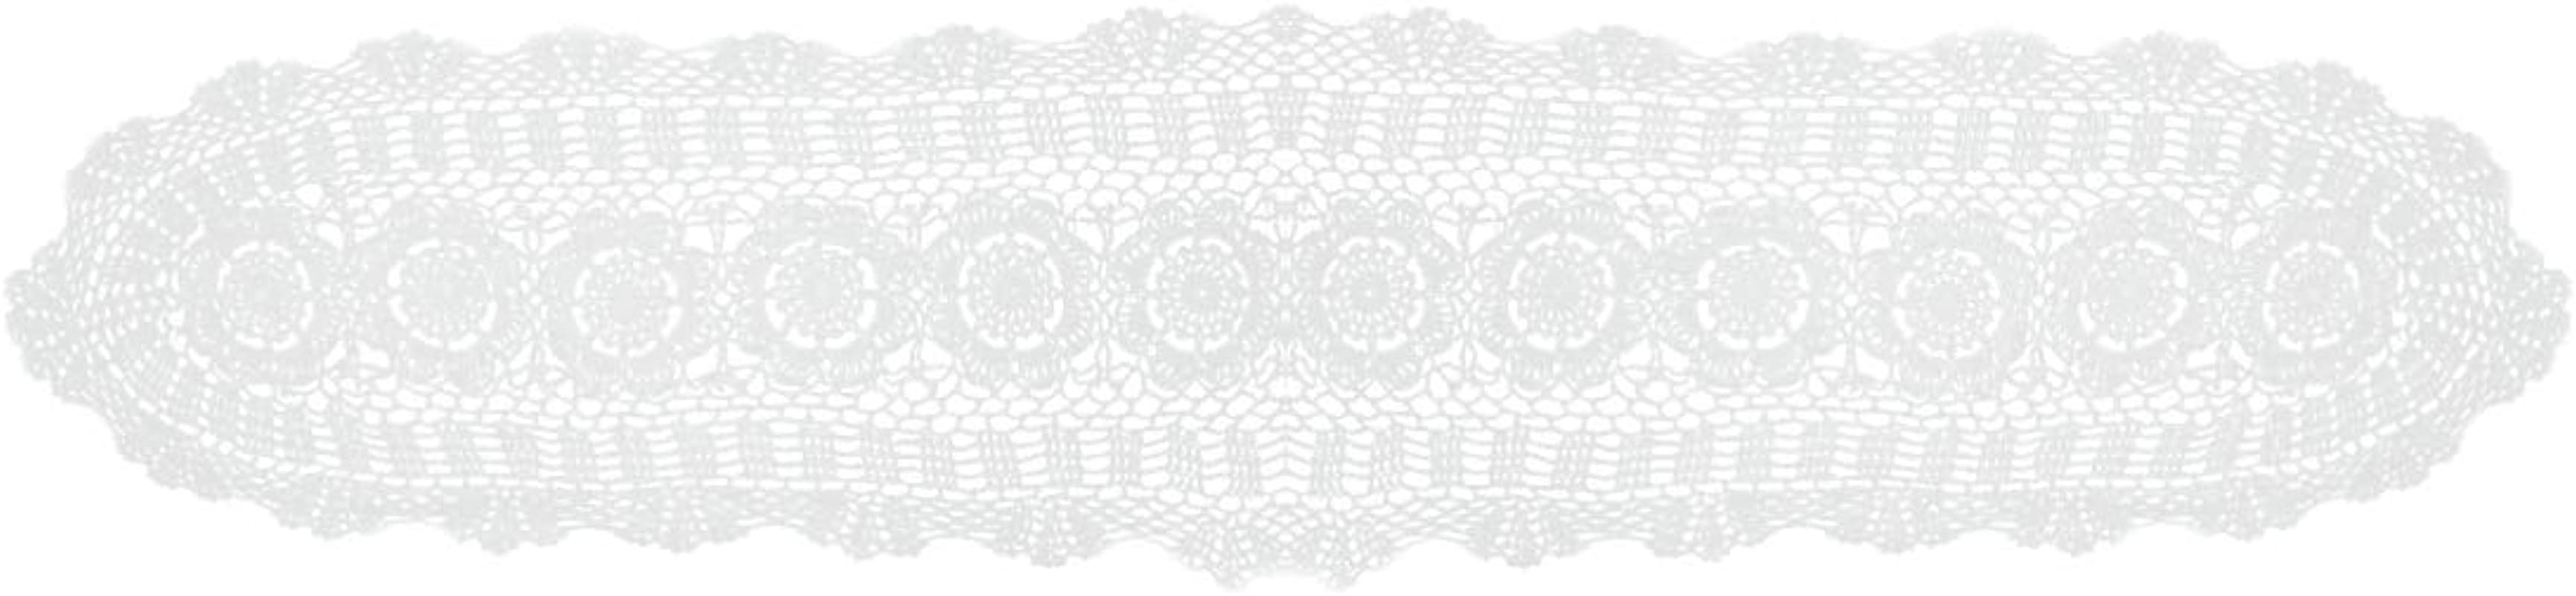 Kilofly Handmade Crochet Lace Rectangular Table Runner 11 X 43 Inch White